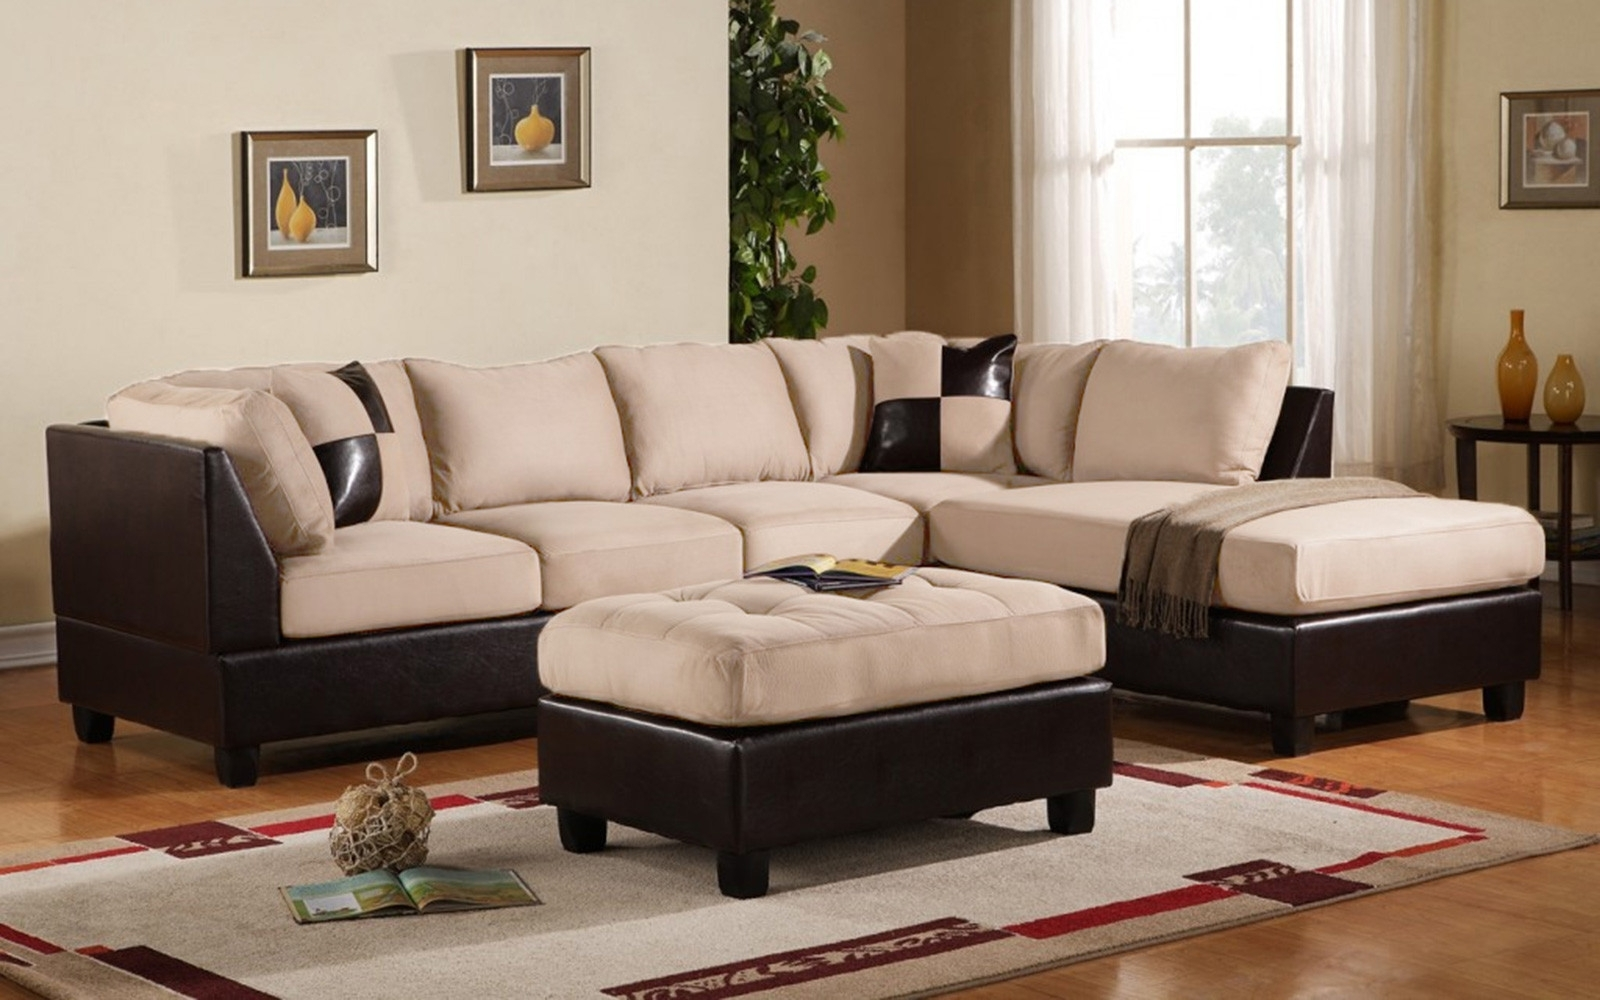 Modern Microfiber Sectional Sofas Pertaining To Most Current Faux Suede Sectional Sofa – Home And Textiles (View 16 of 20)